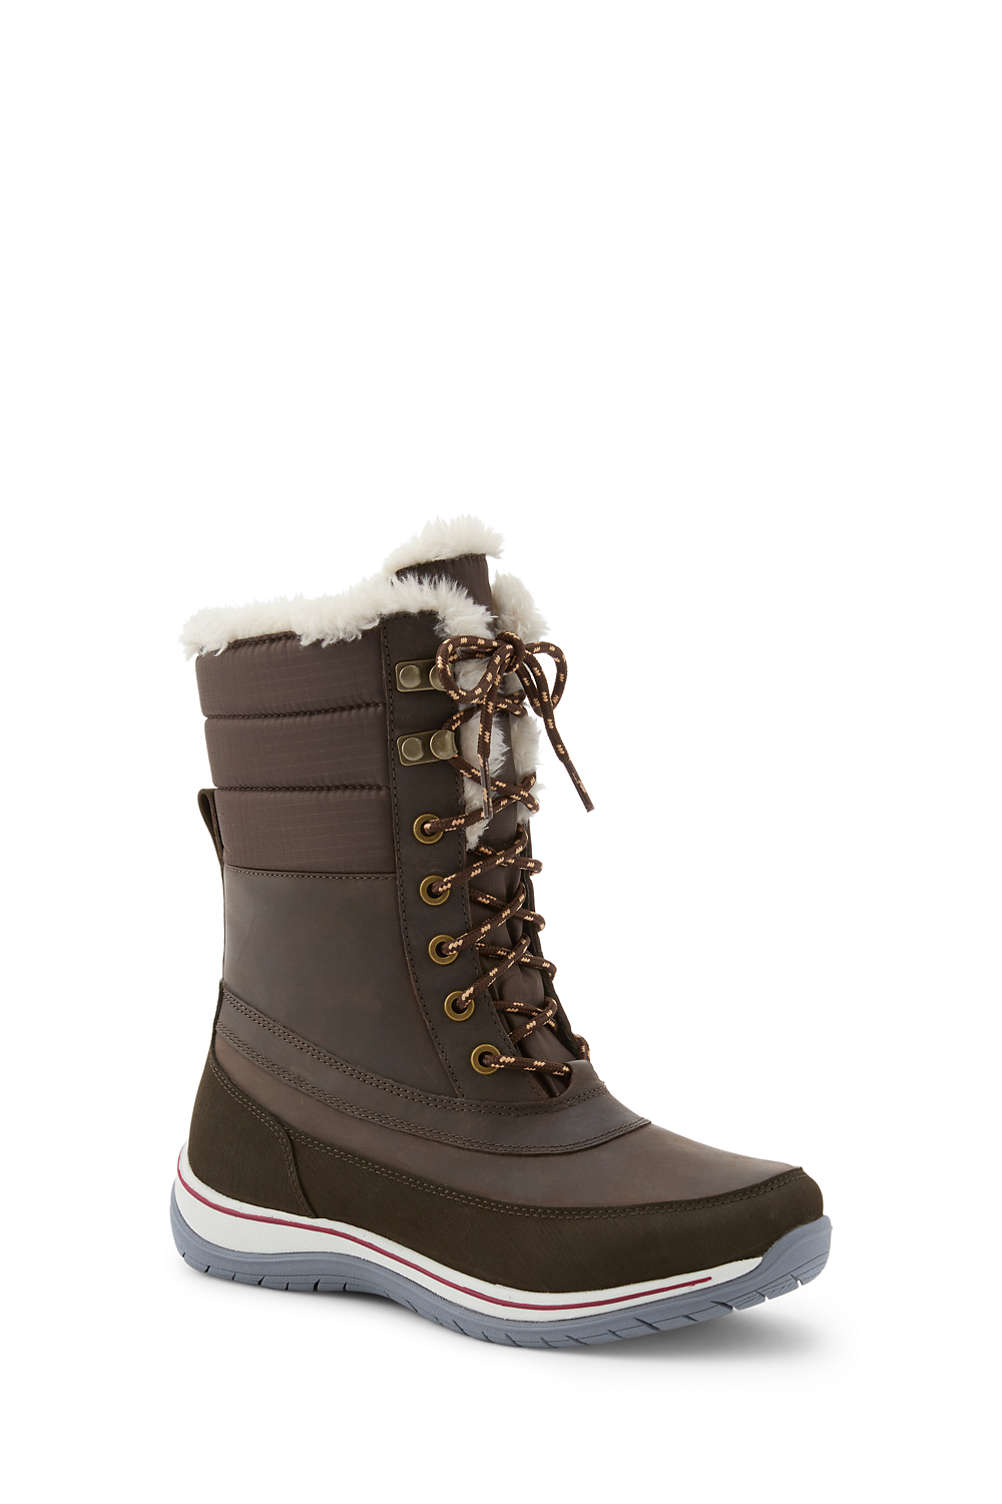 Women s Expedition Winter Snow Boots from Lands  End 737e113a3b